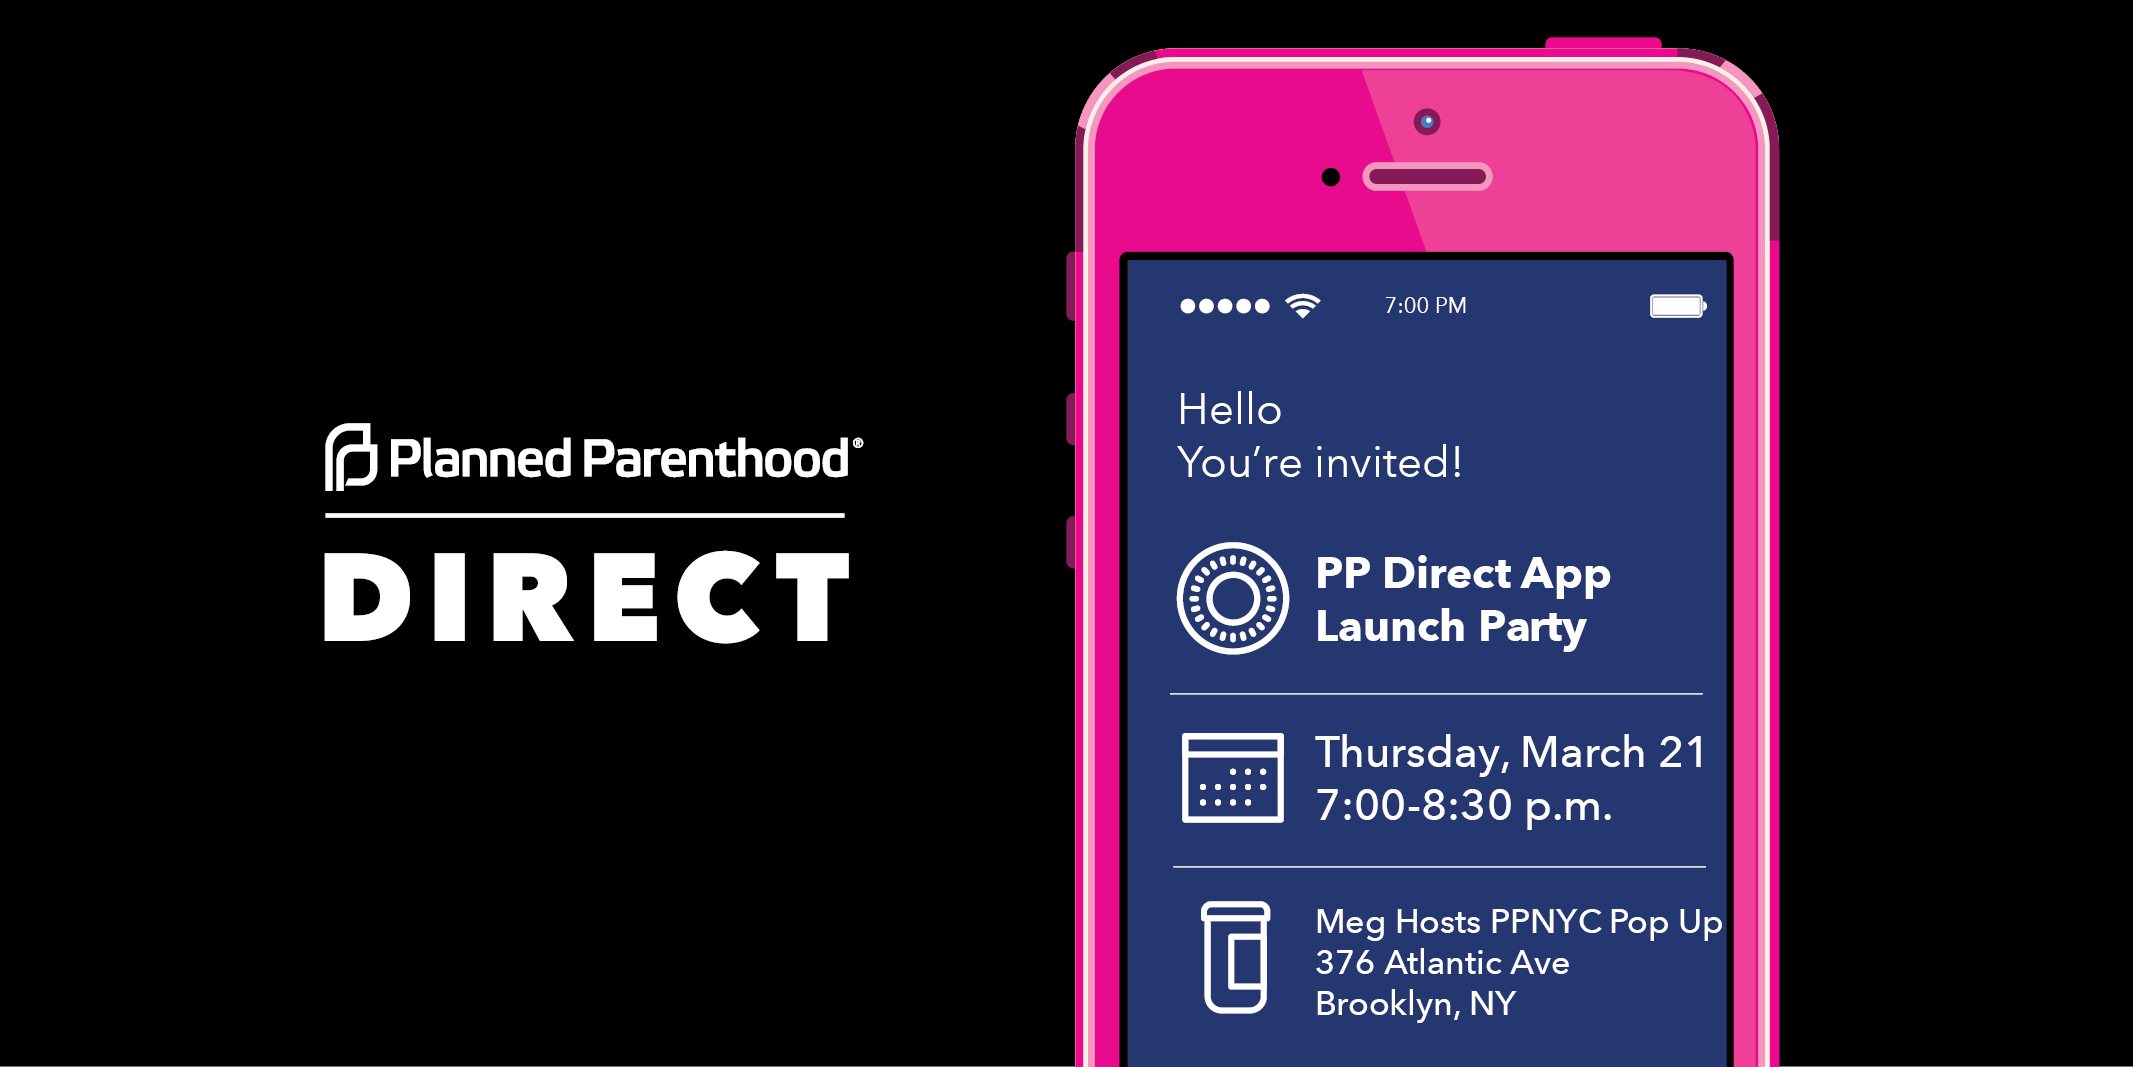 PP Direct Launch Twitter Invite.png